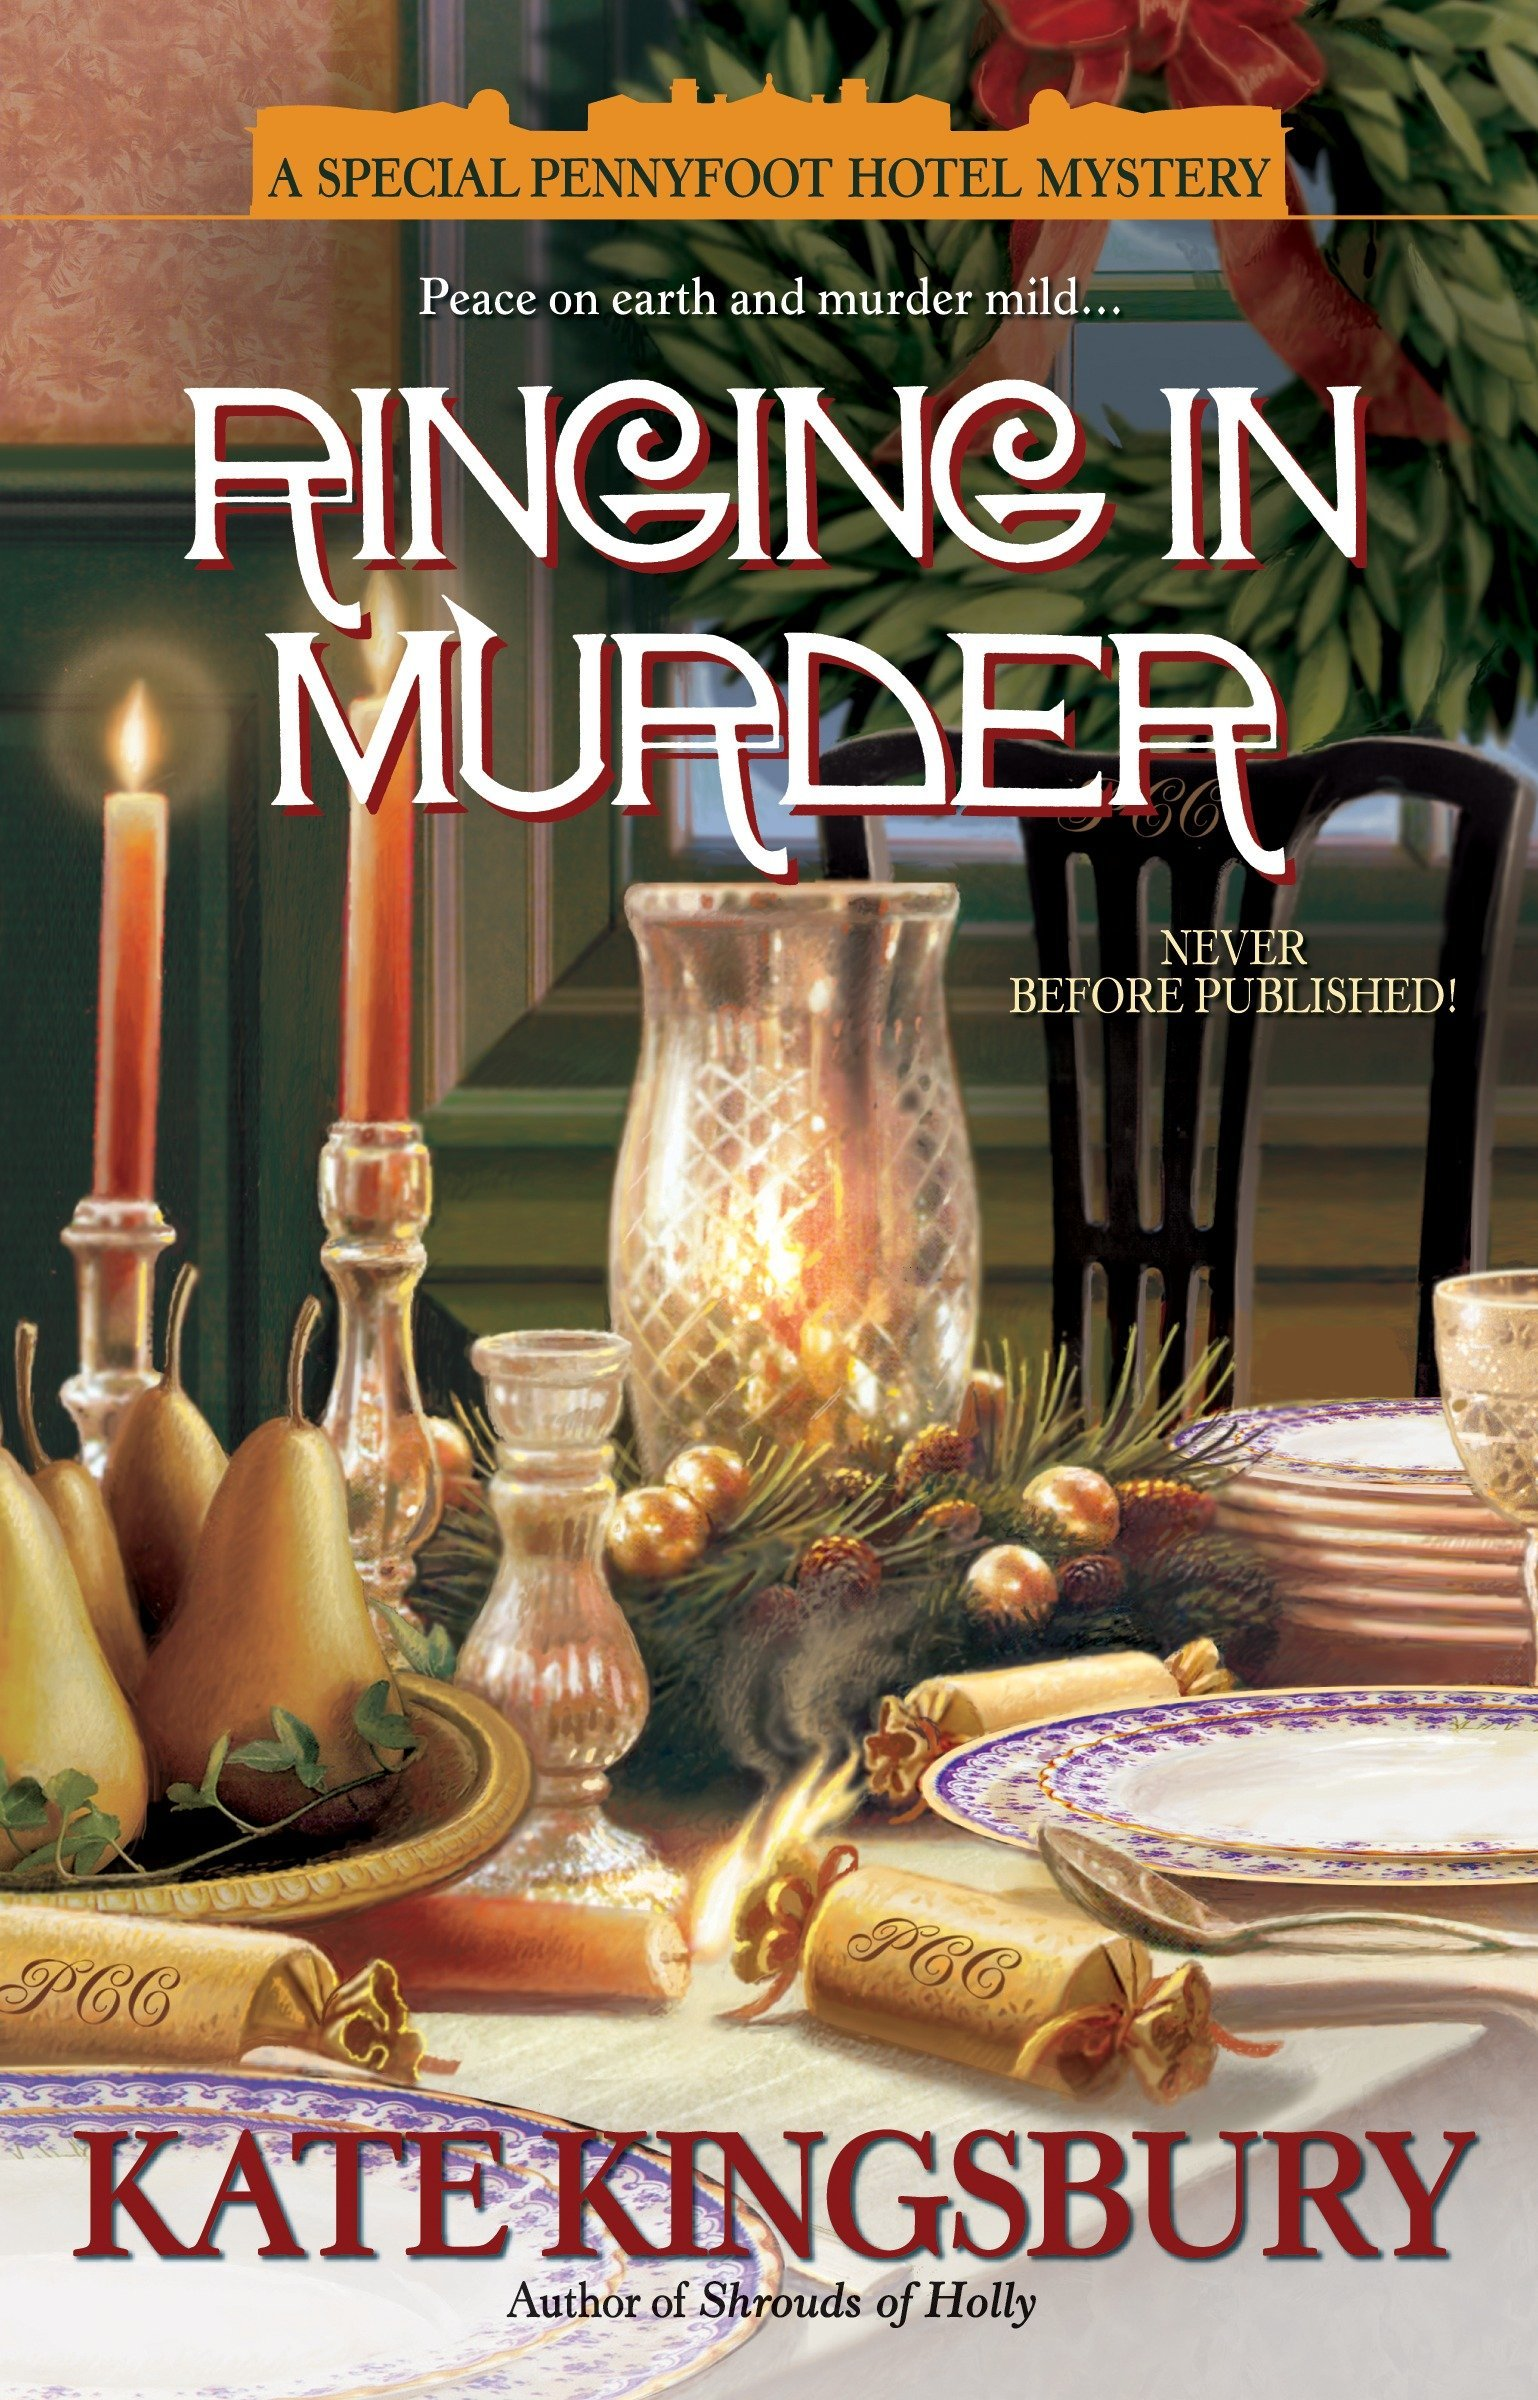 Ringing in Murder: A Special Pennyfoot Hotel Mystery (Holiday Pennyfoot Hotel Mysteries) PDF